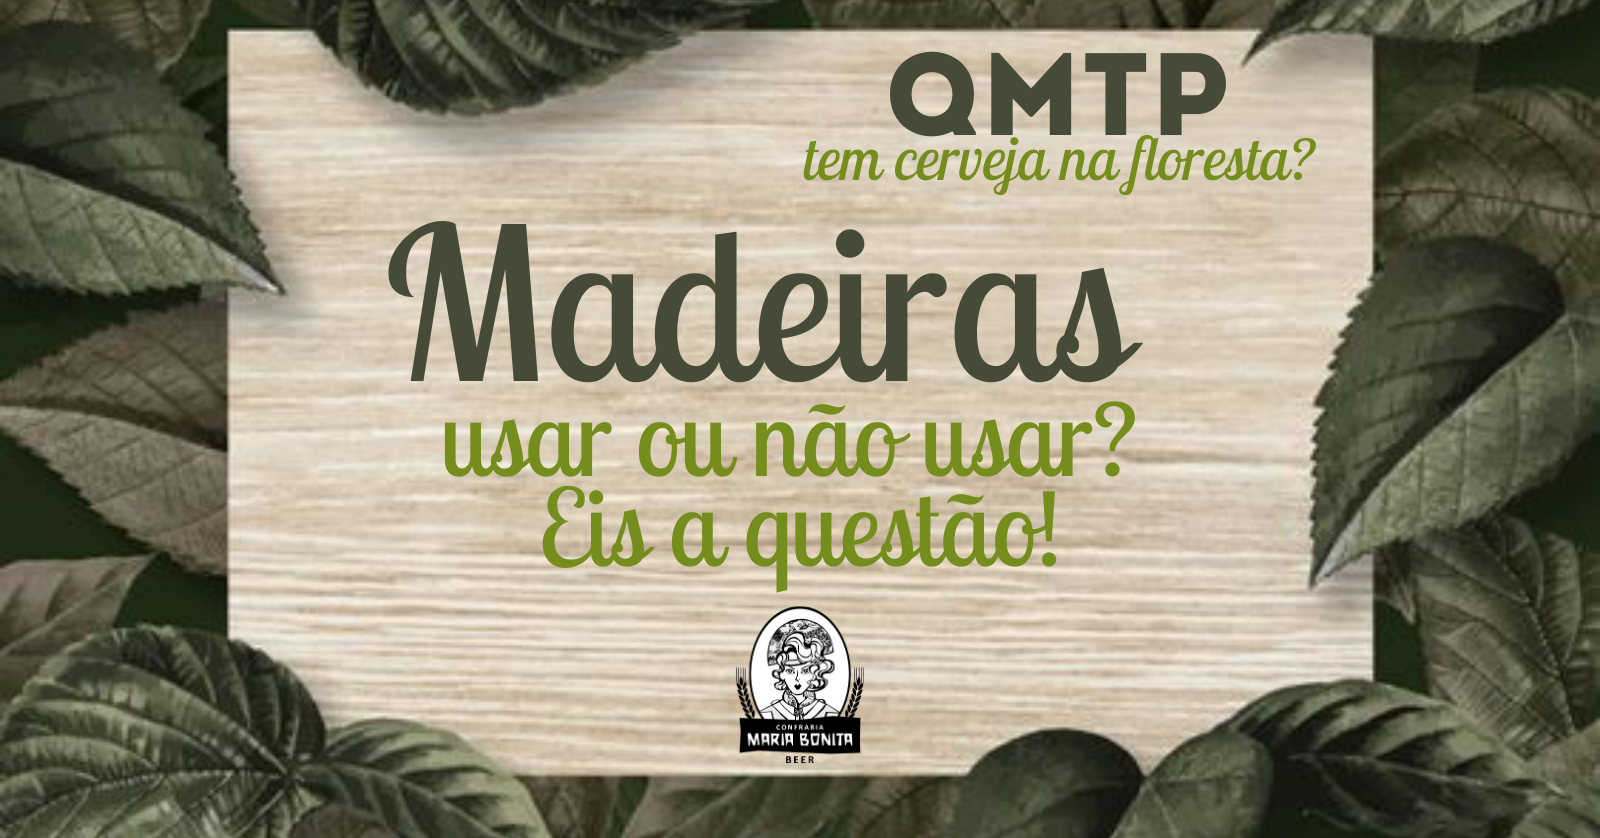 QMTP2020_Titulo3_Post_Blog.png